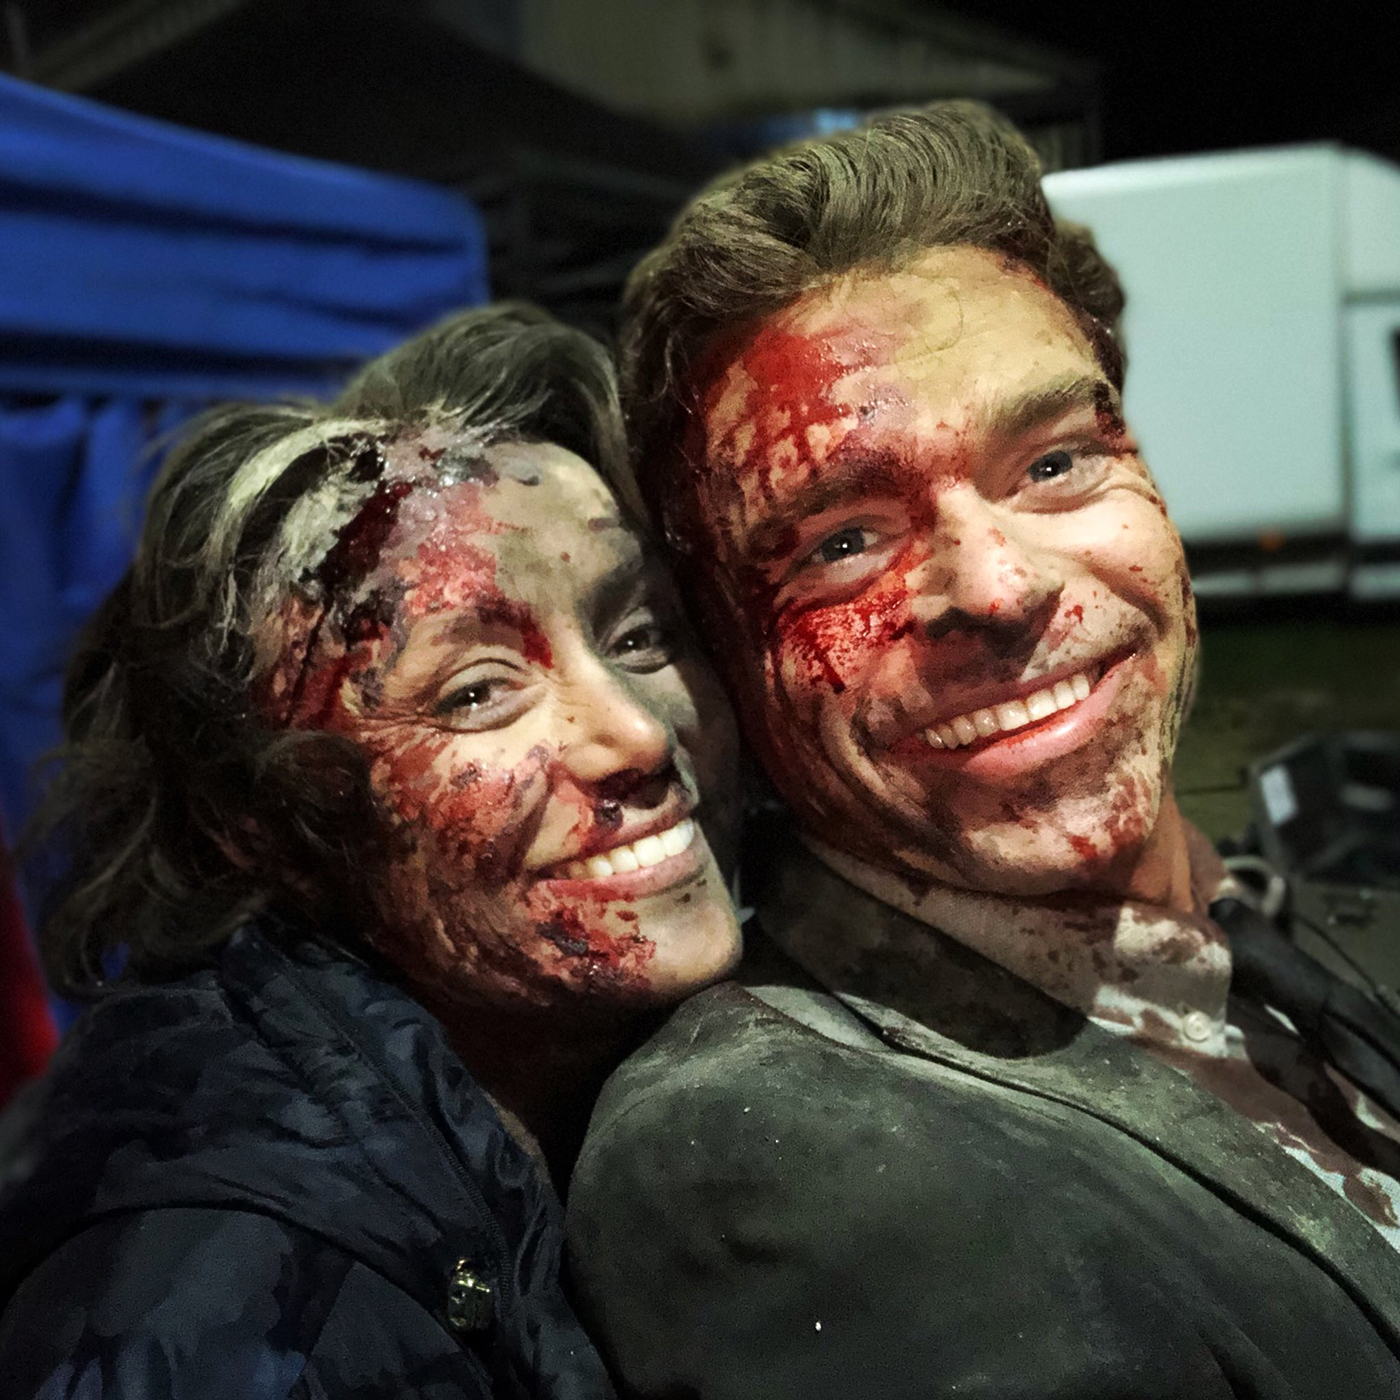 Richard Madden and Keeley Hawes bloody faces